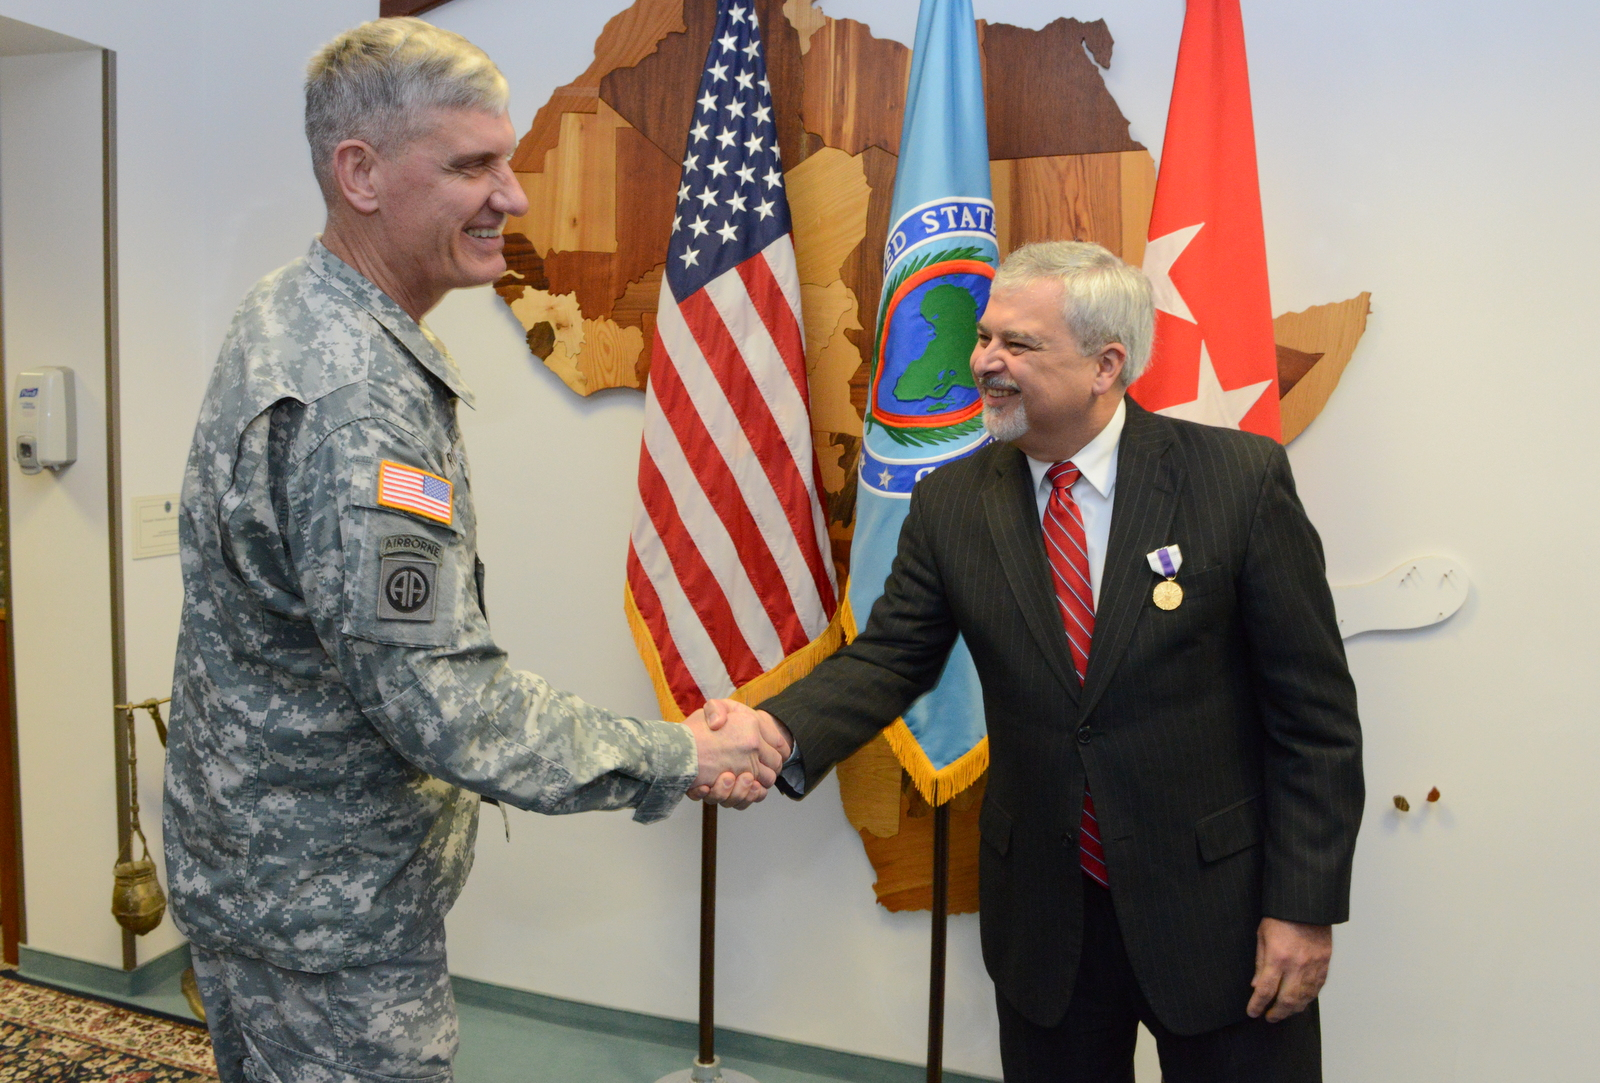 U.S. Army Gen. David Rodriguez, left, commander of U.S. Africa Command, shakes hands with Ambassador Phillip Carter III, the command's outgoing deputy to the commander for civil military engagement, after awarding Carter the Joint Distinguished Civilian Service Medal at Kelley Barracks, U.S. Army Garrison Stuttgart, Germany, Sept. 17, 2015. Before becoming the command's senior diplomat and civilian advisor to the commander in November 2013, Carter served as the U.S. Ambassador to Republic of Cote d'Ivoire.